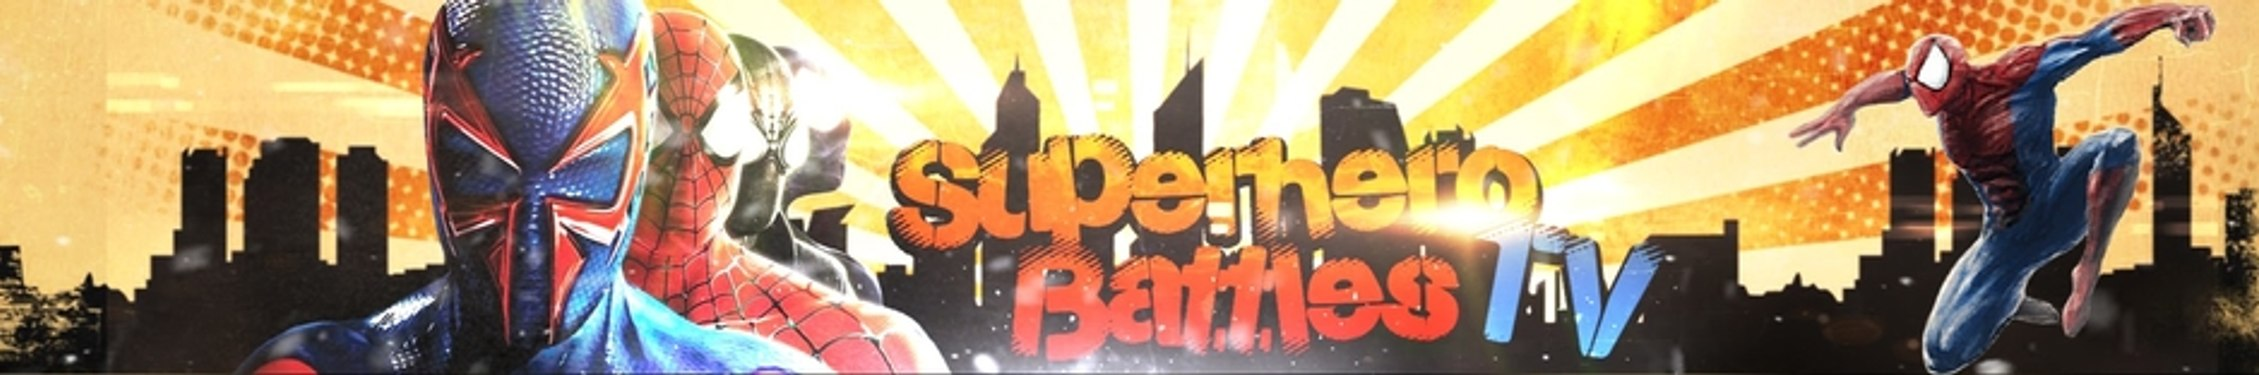 Superhero Battles TV